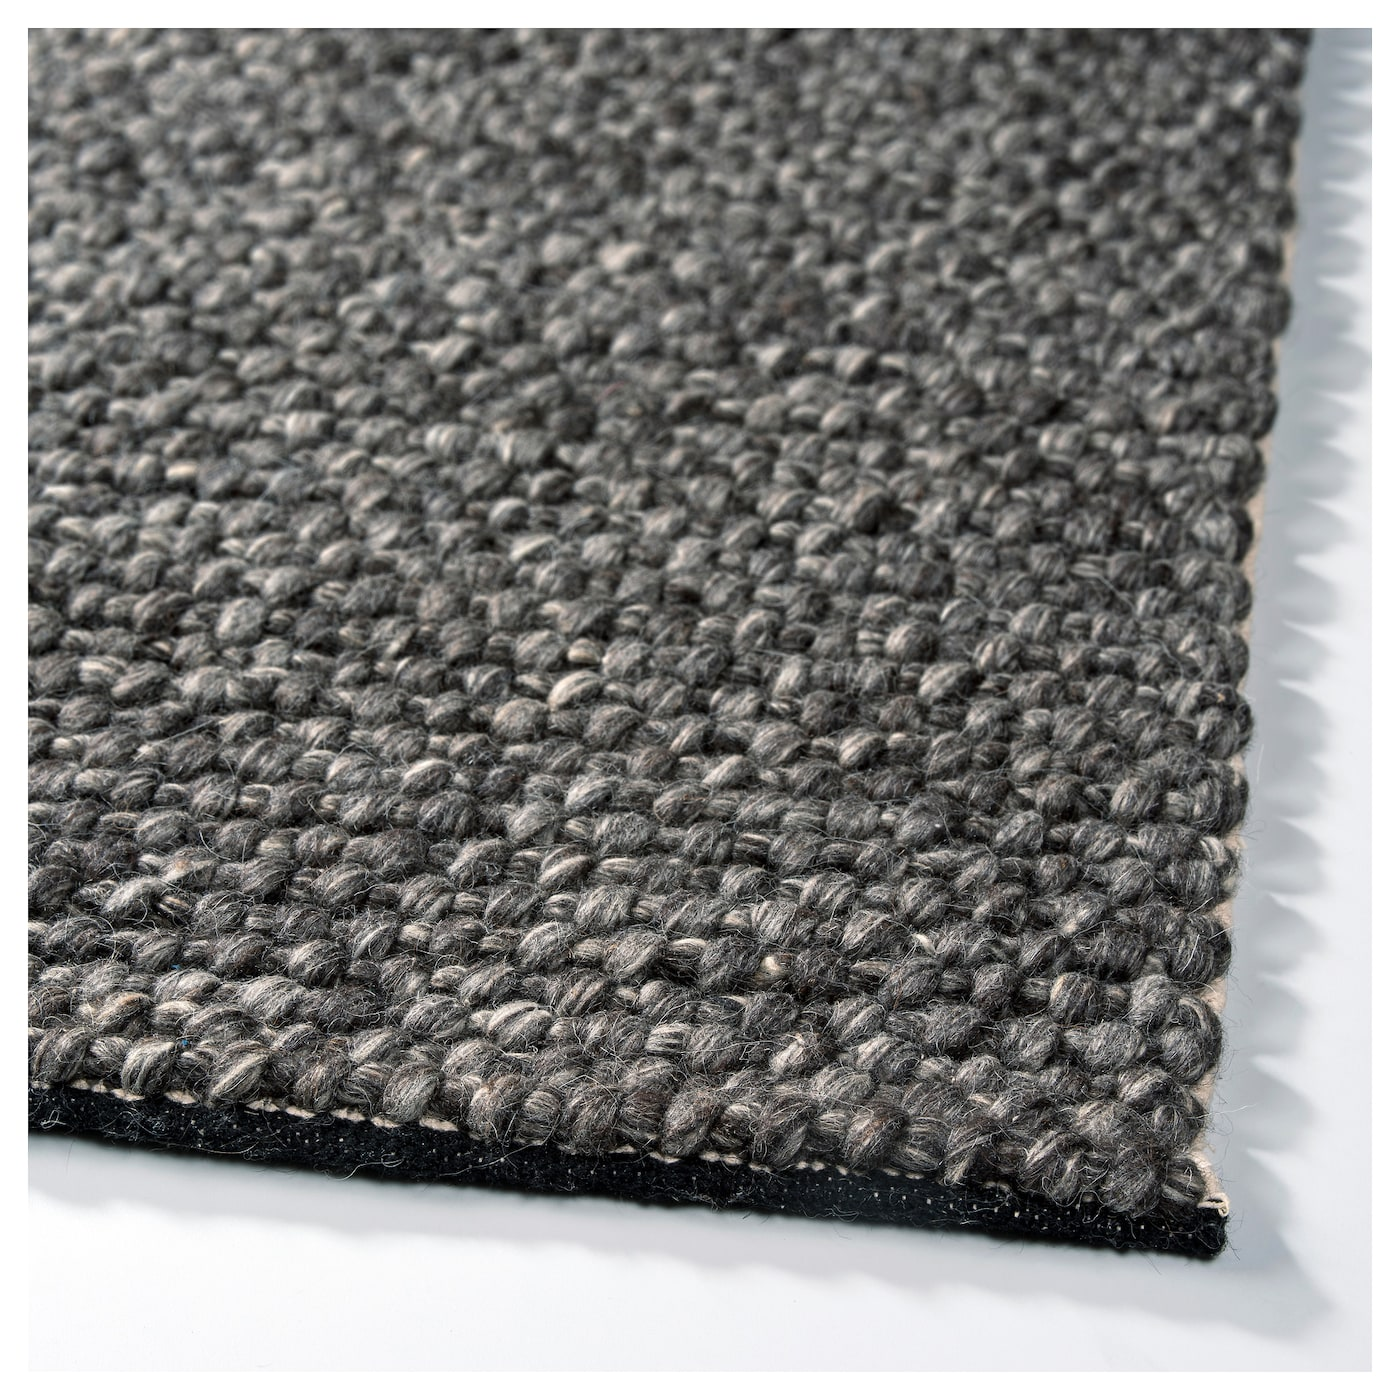 IKEA HJORTHEDE rug Handwoven by skilled craftspeople, and therefore unique.